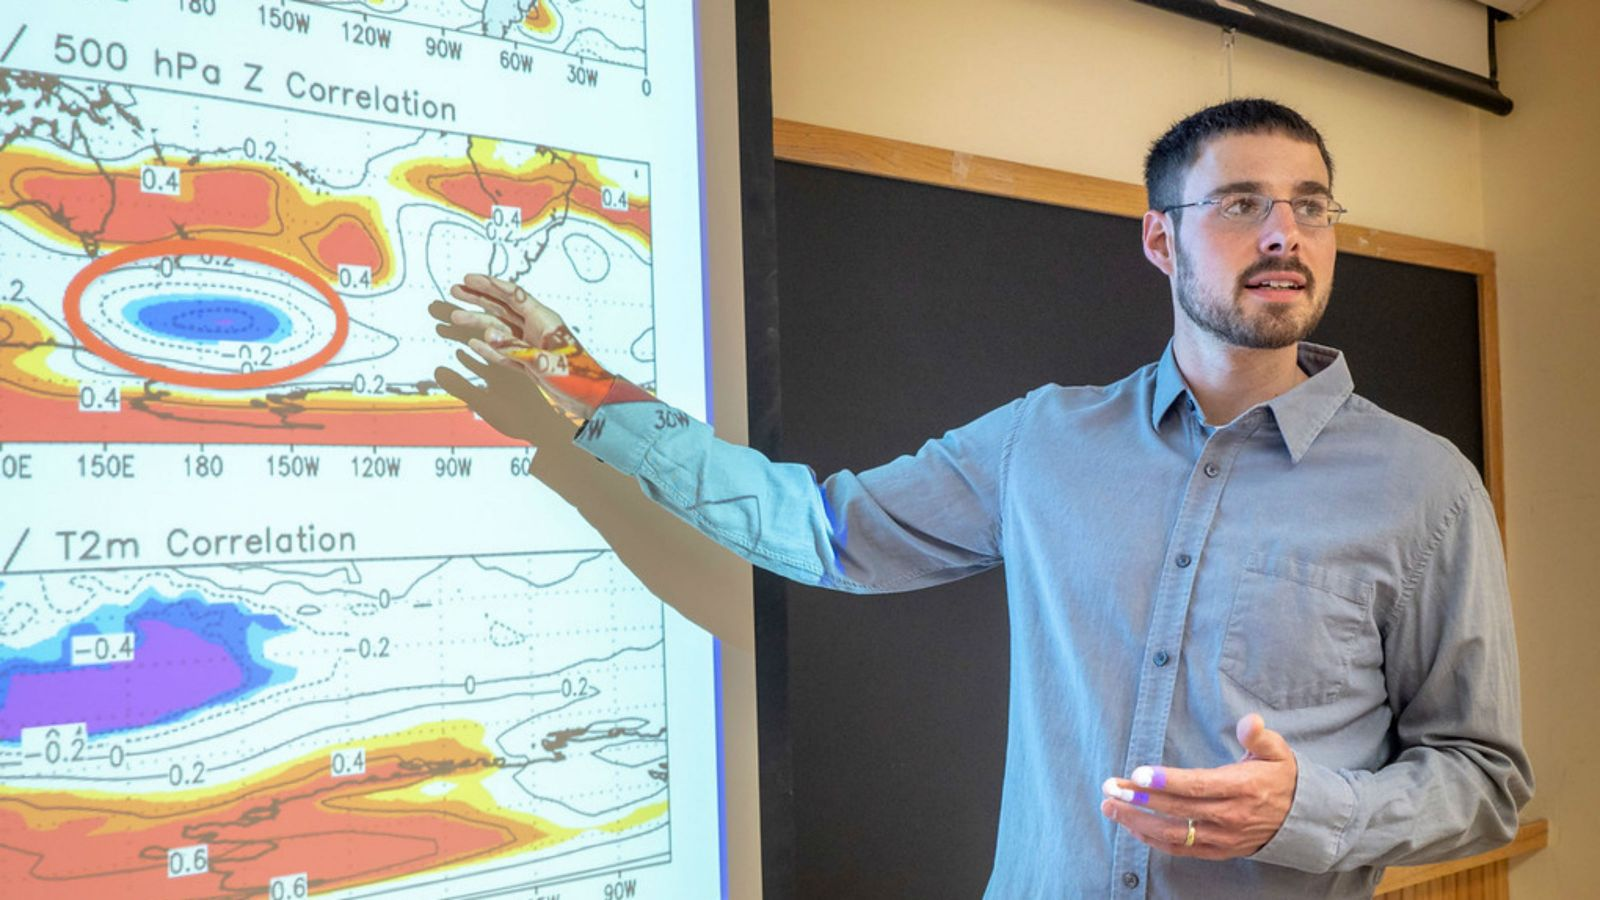 Kyle Clem stands in front of a map showing weather and pressure zones.